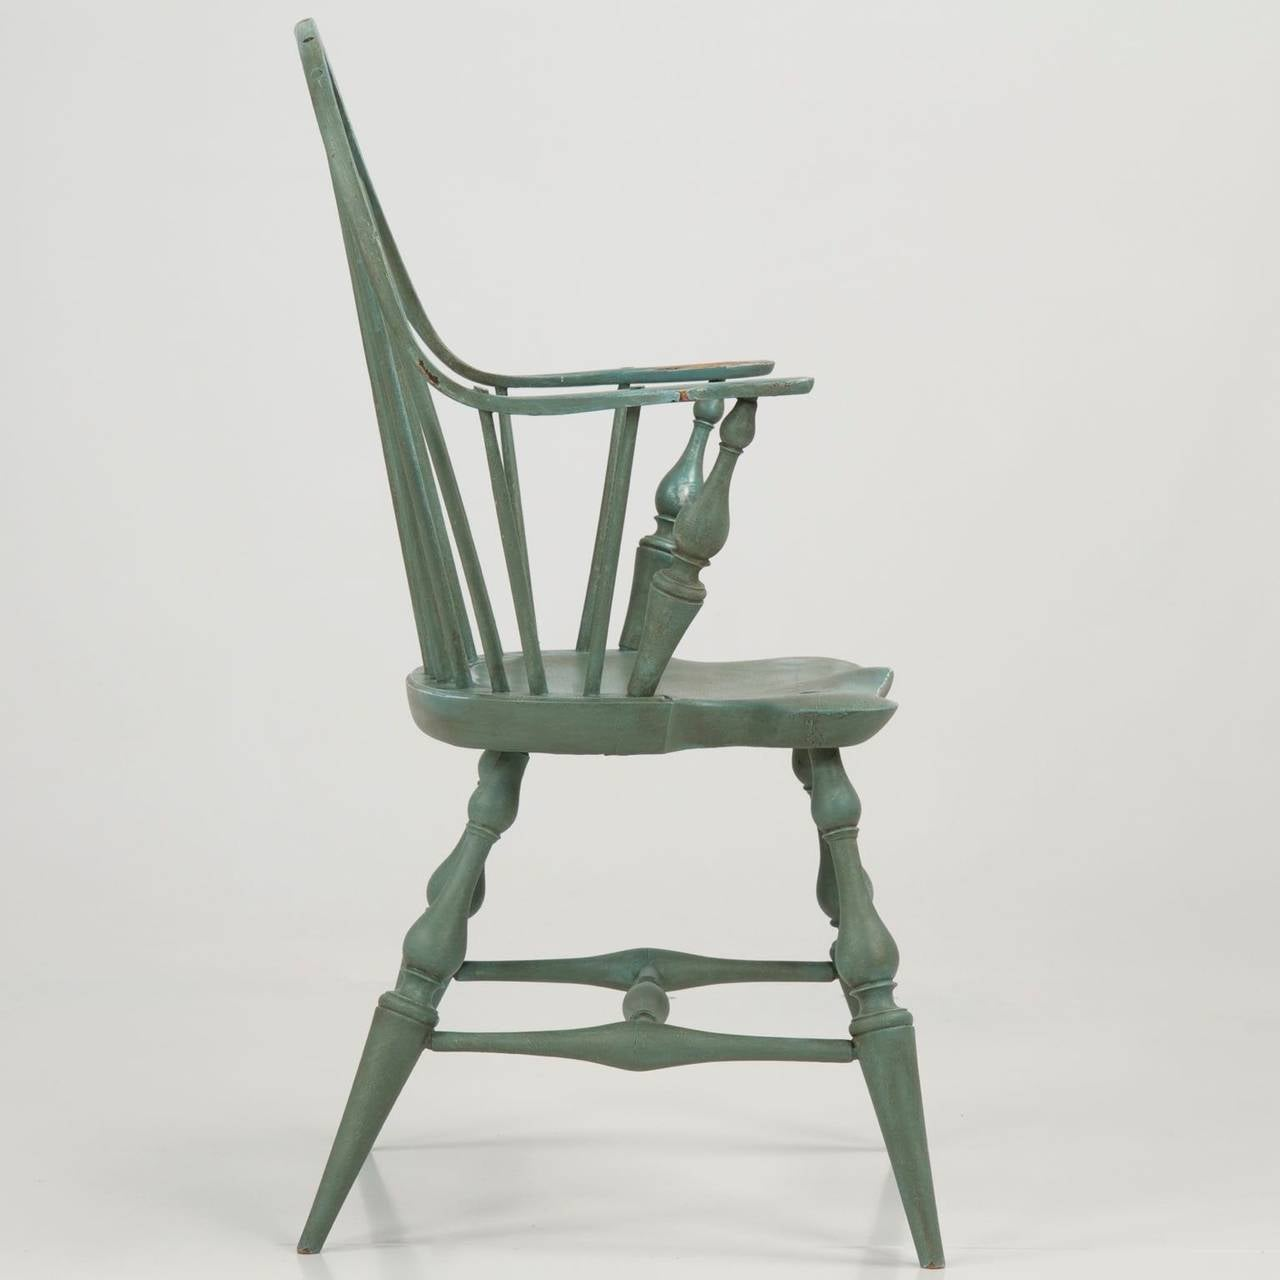 dr dimes windsor chairs baby moving chair american continuous arm style 20th century